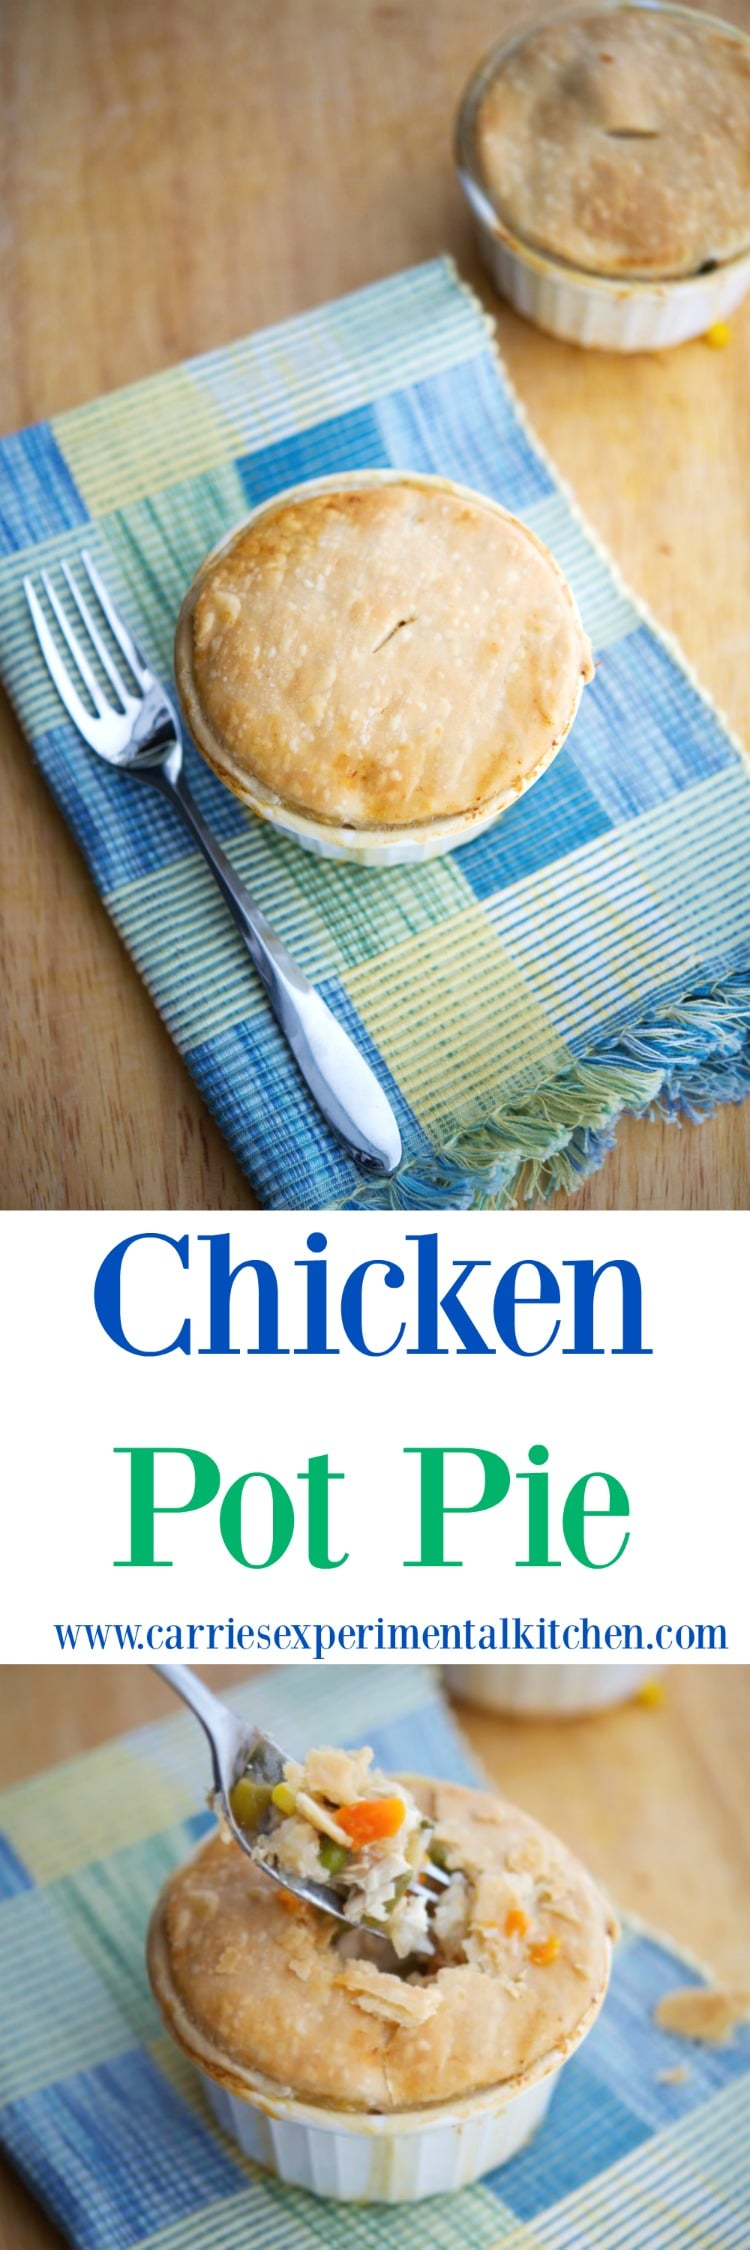 Turn leftover chicken or turkey into a new meal with this delicious Individual Chicken Pot Pie. #chicken #casserole #leftovers #turkey